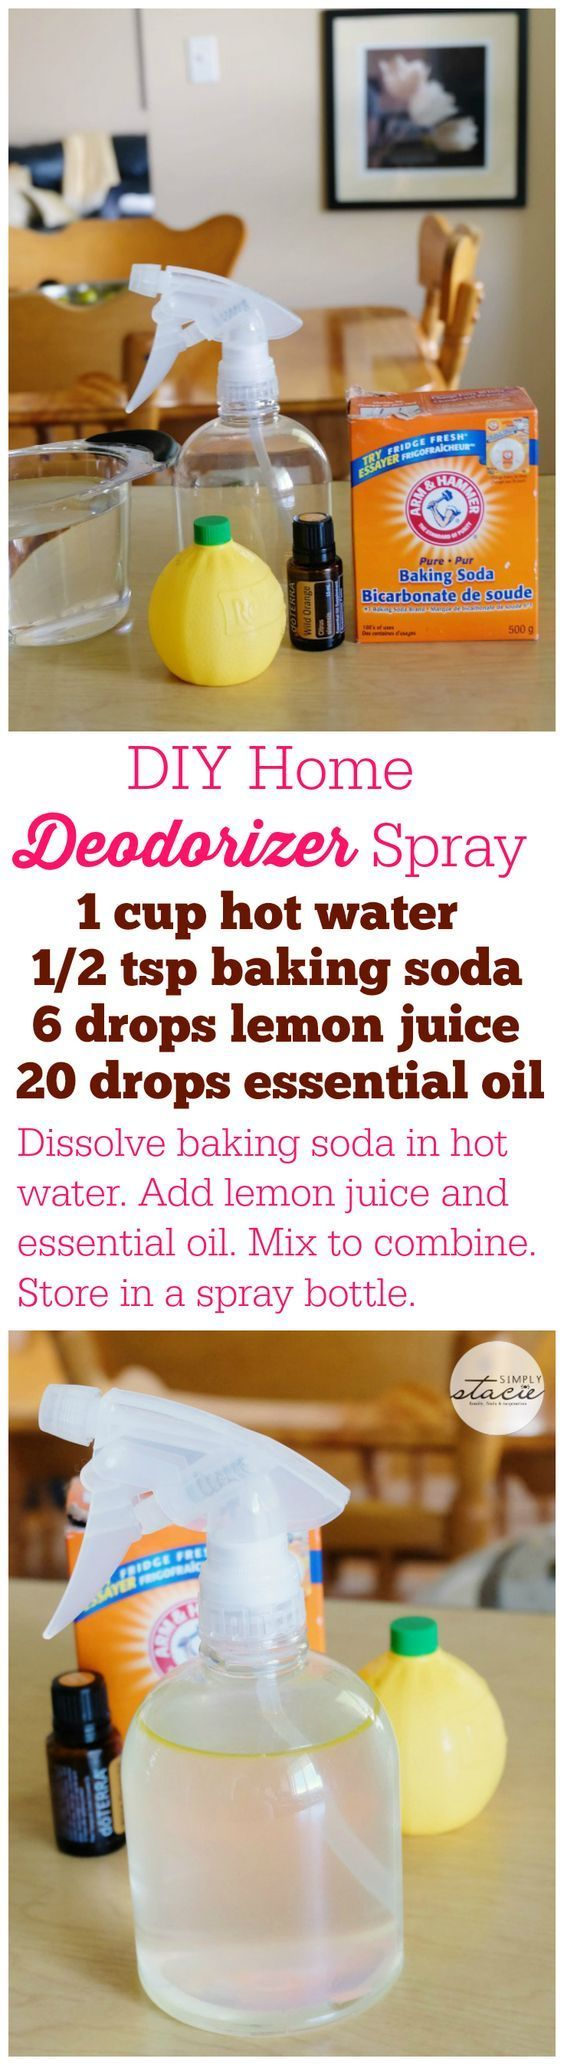 DIY Home Deodorizer Spray - your house will smell fresh with this simple recipe!